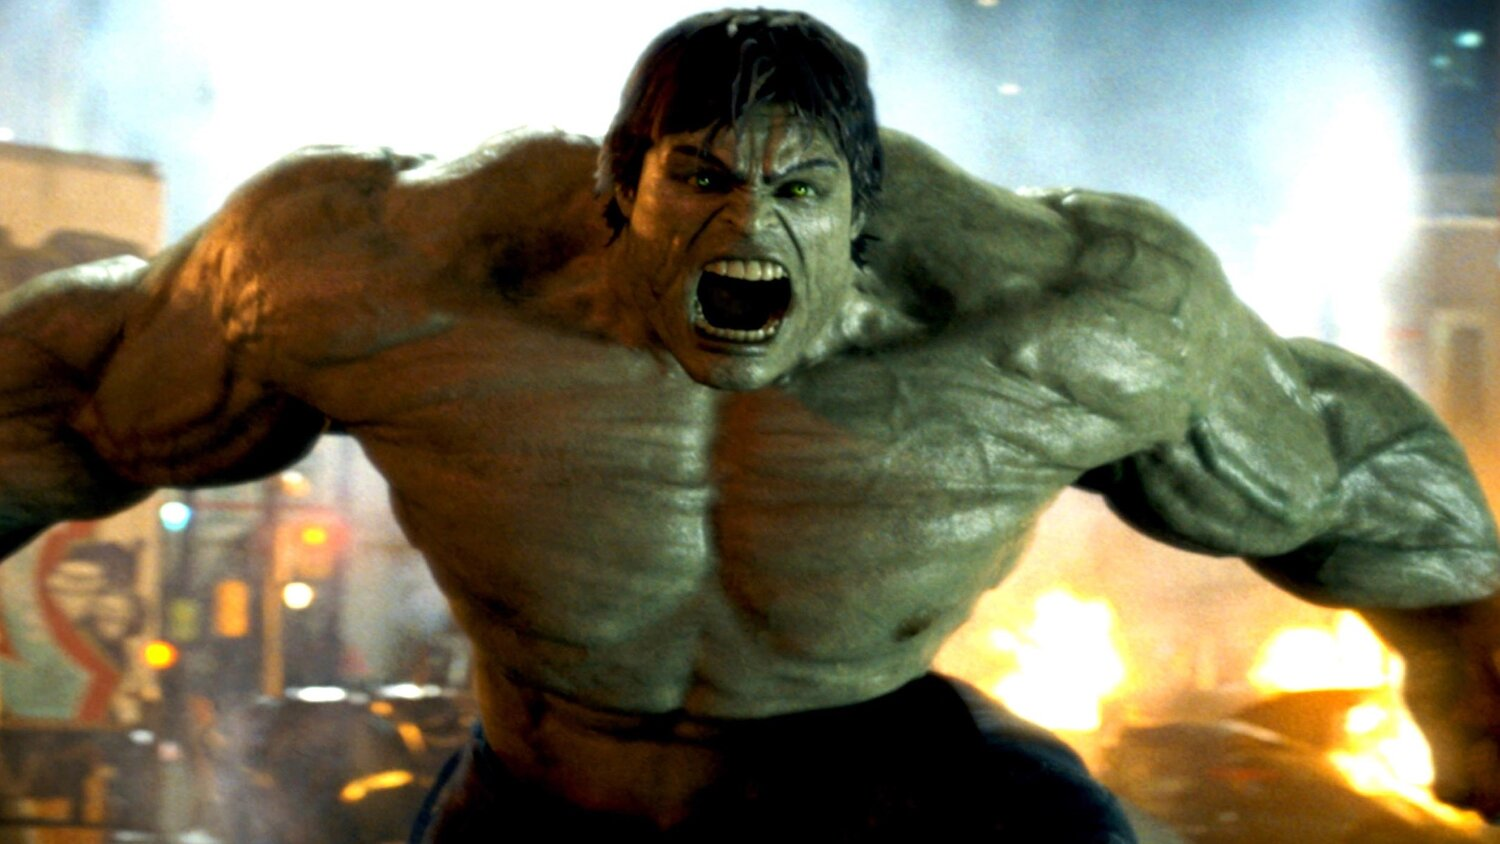 marvel-fan-images-what-edward-norton-could-have-looked-like-as-smart-hulk-social.jpg